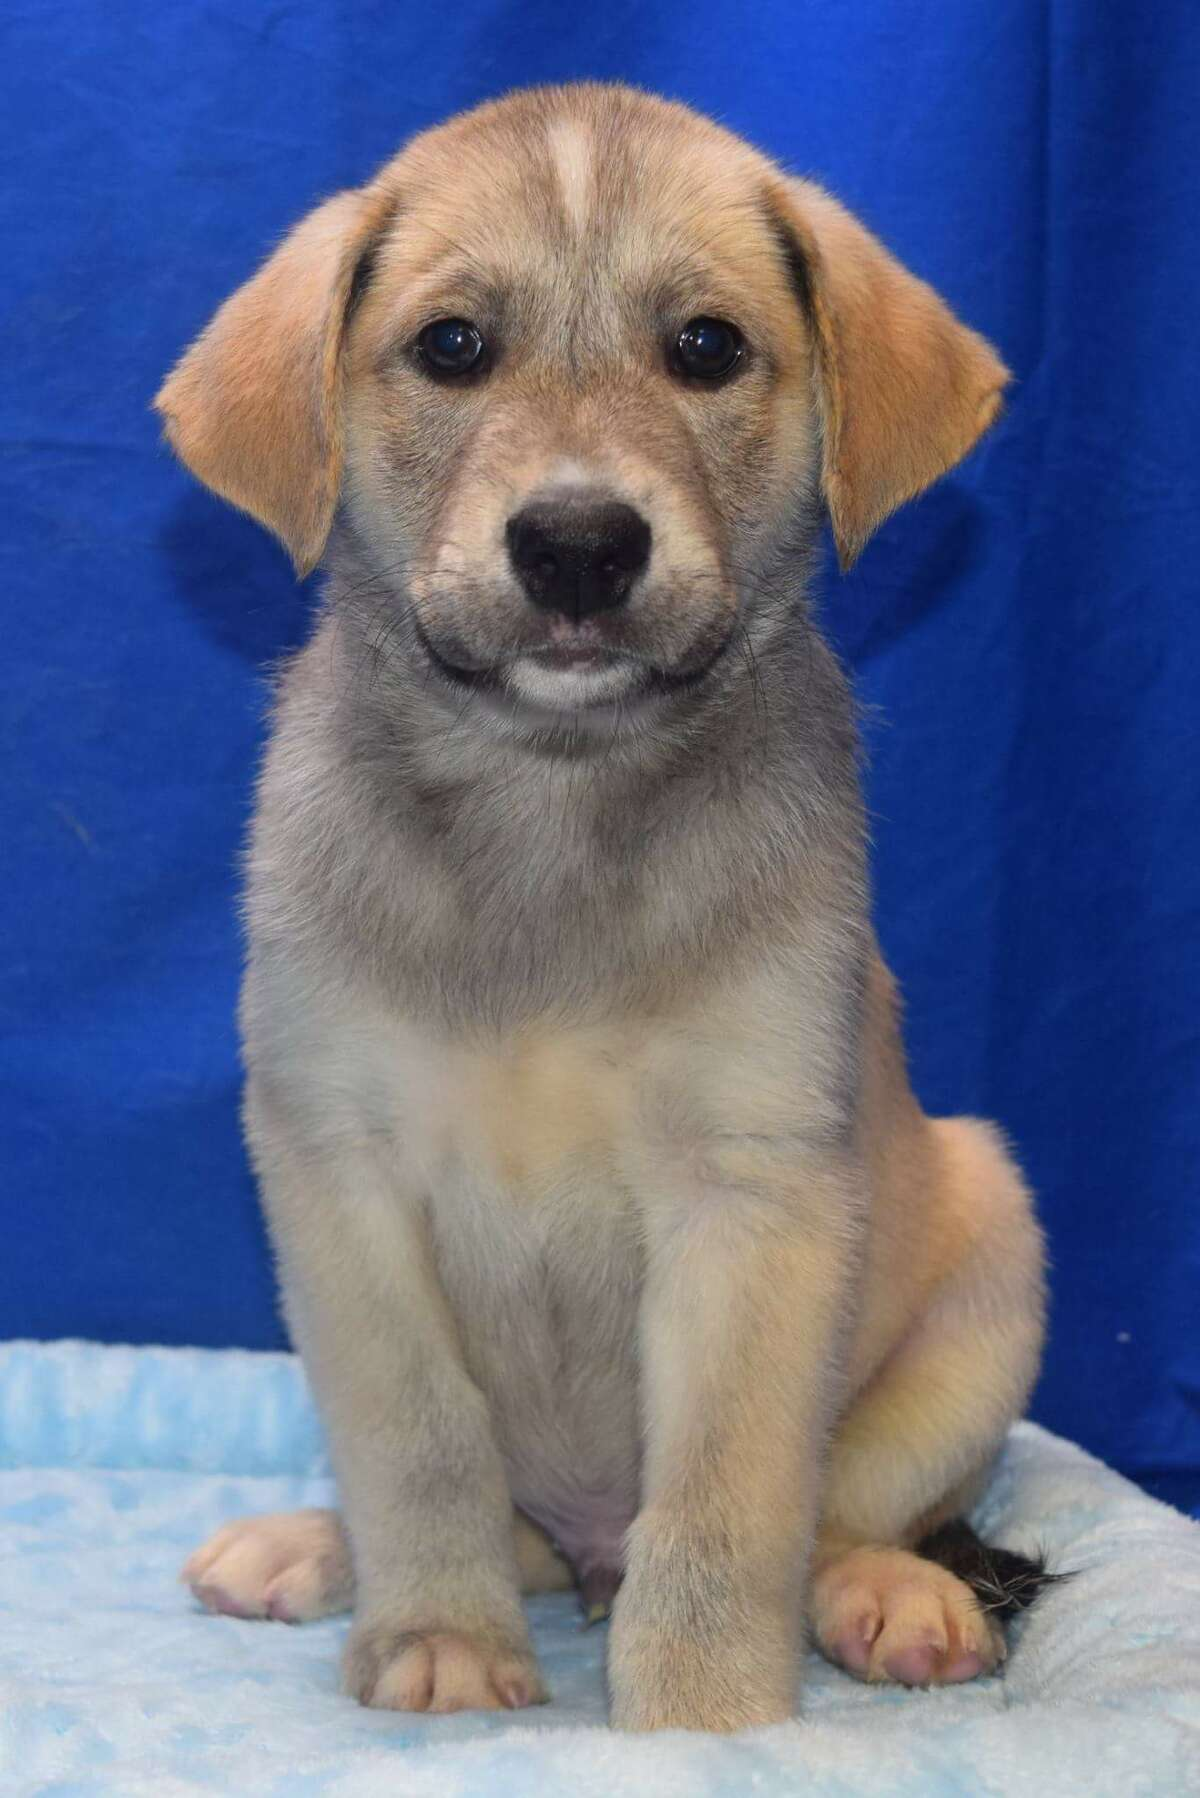 This puppy, named Link by new owner Andy Fortner, 13, was among the almost 20 dogs adopted from Friendswood Animal Control on Sept. 5, breaking a record for single-day adoptions in the city.